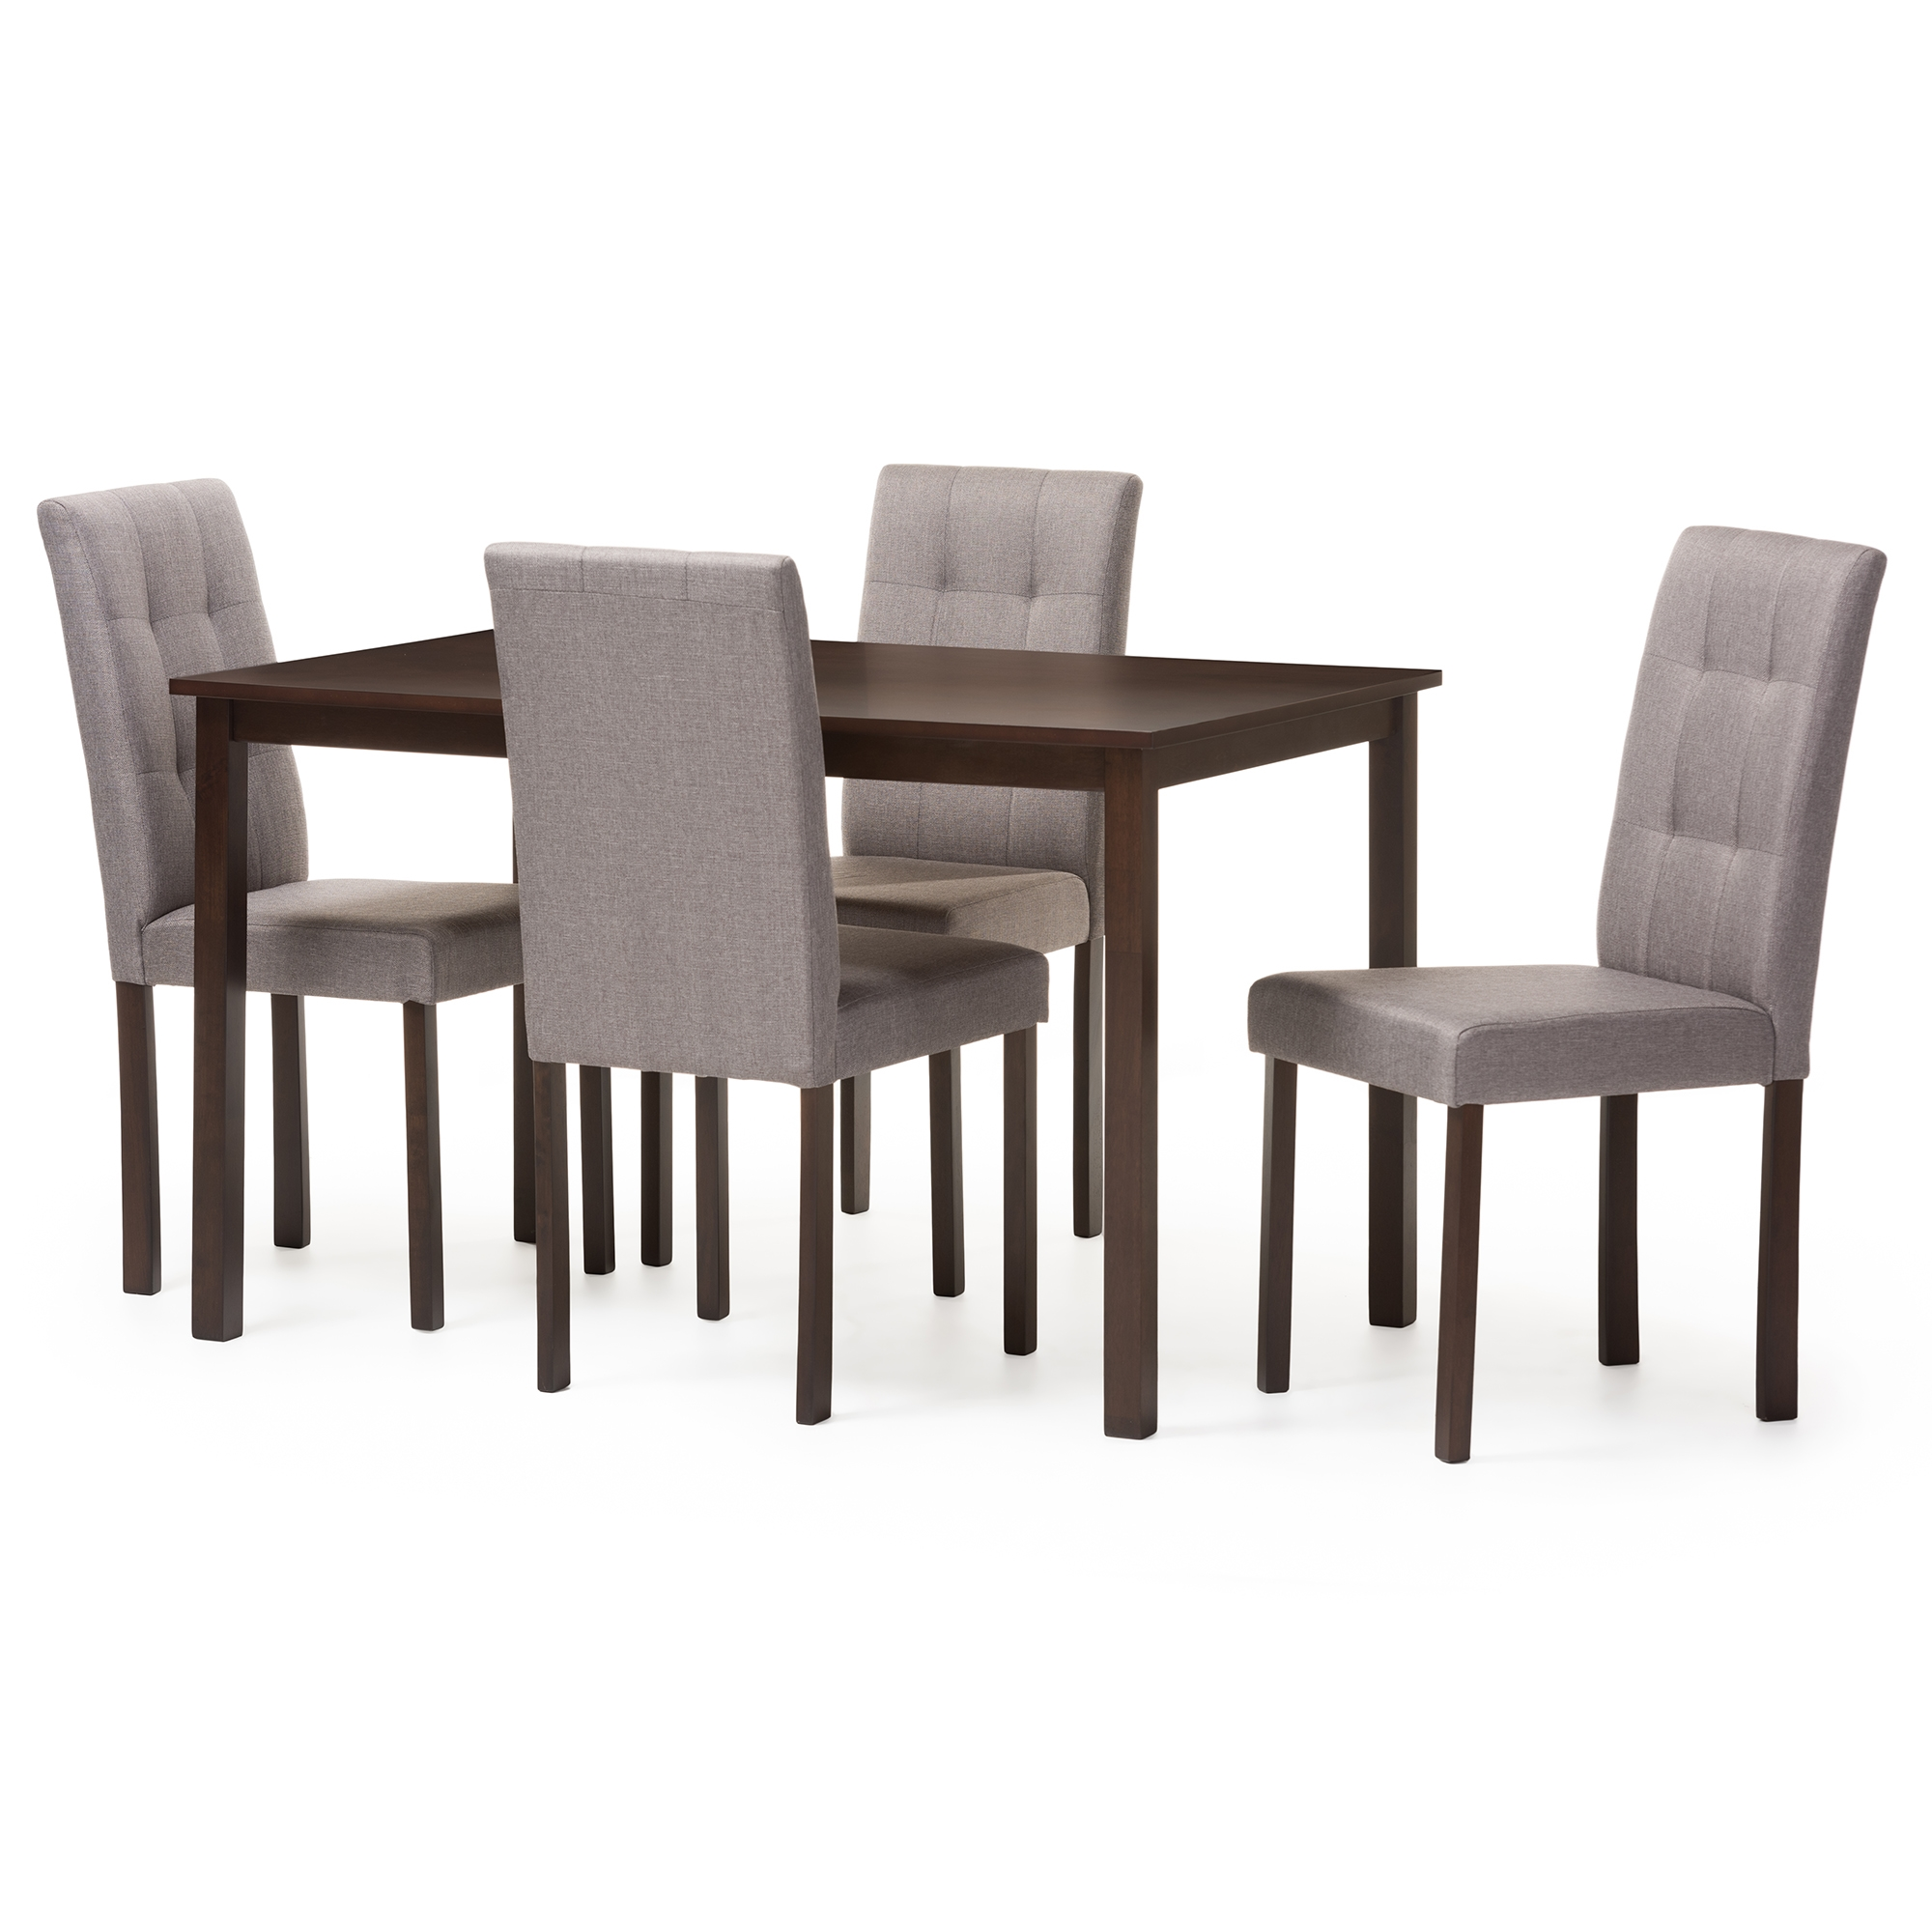 Beau Baxton Studio Andrew Modern And Contemporary 5 Piece Grey Fabric  Upholstered Grid Tufting Dining Set